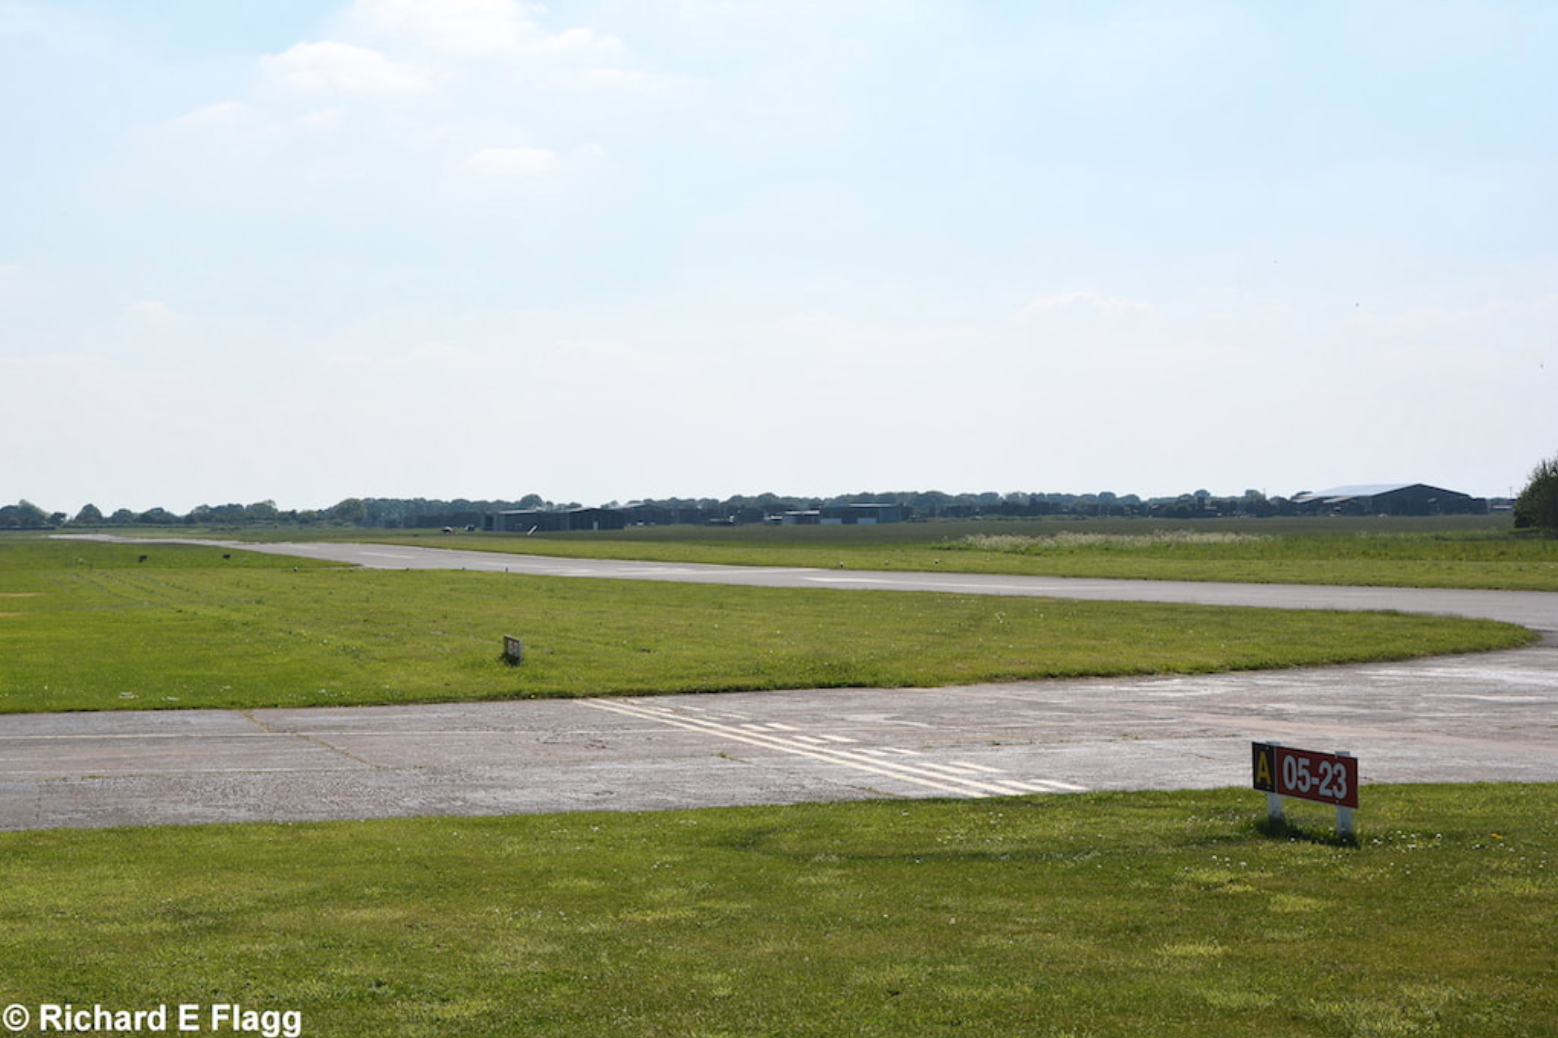 004Taxiway at the east of the airfield. Looking south west. This is now the active runway 05:23 at Sandtoft - 25 May 2017.png